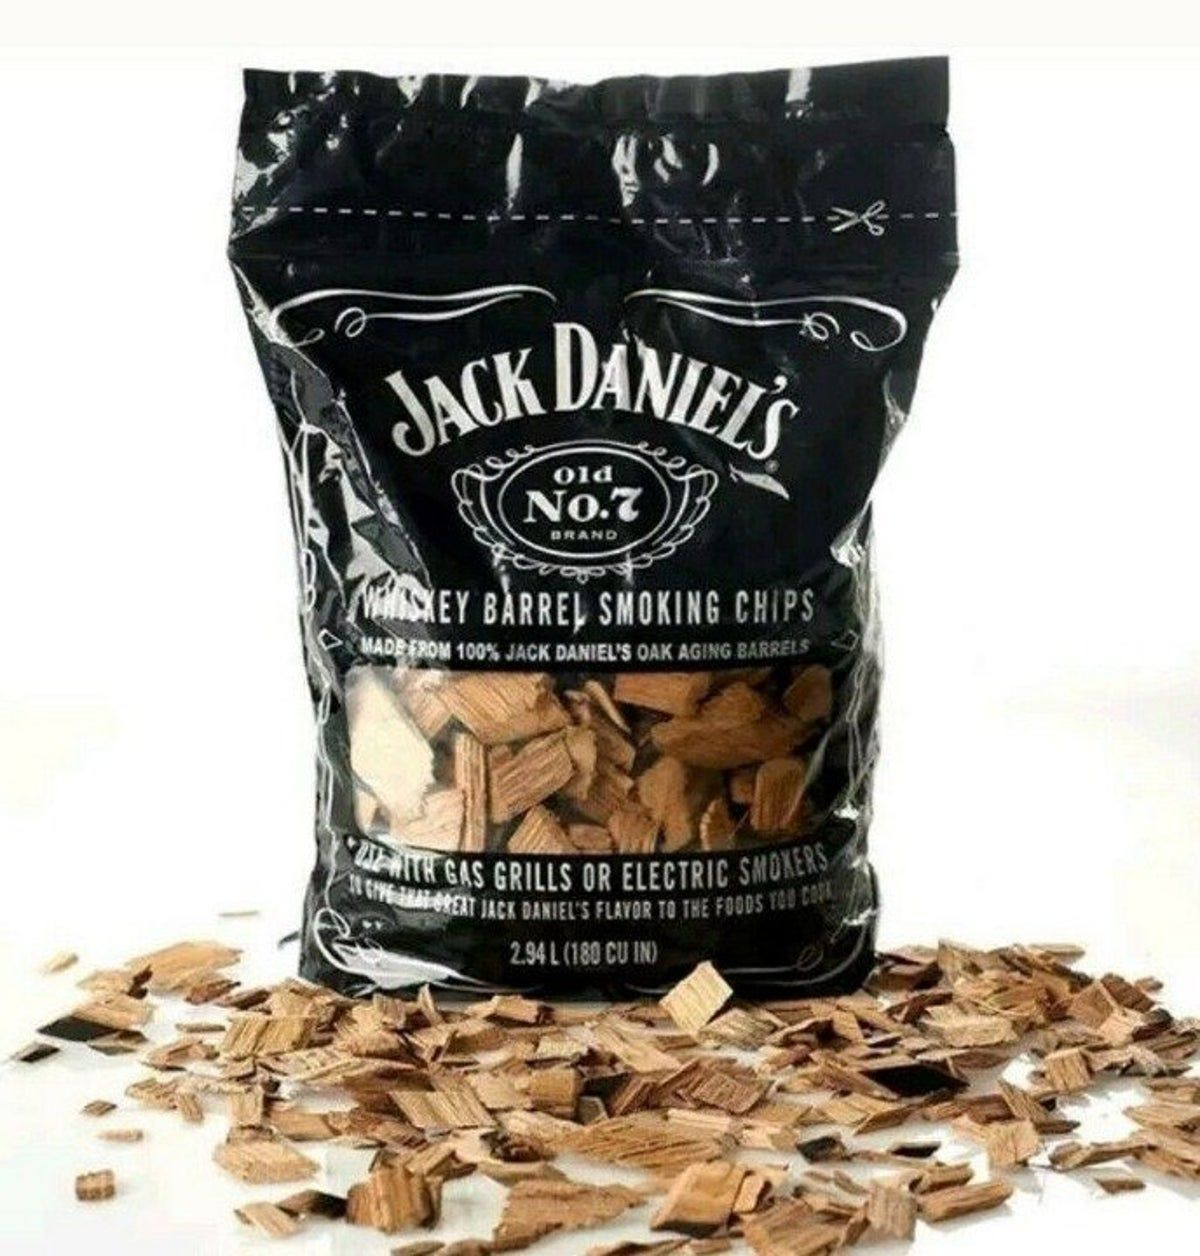 Photo of Jack Daniel Whiskey Barrel Smoking Chips